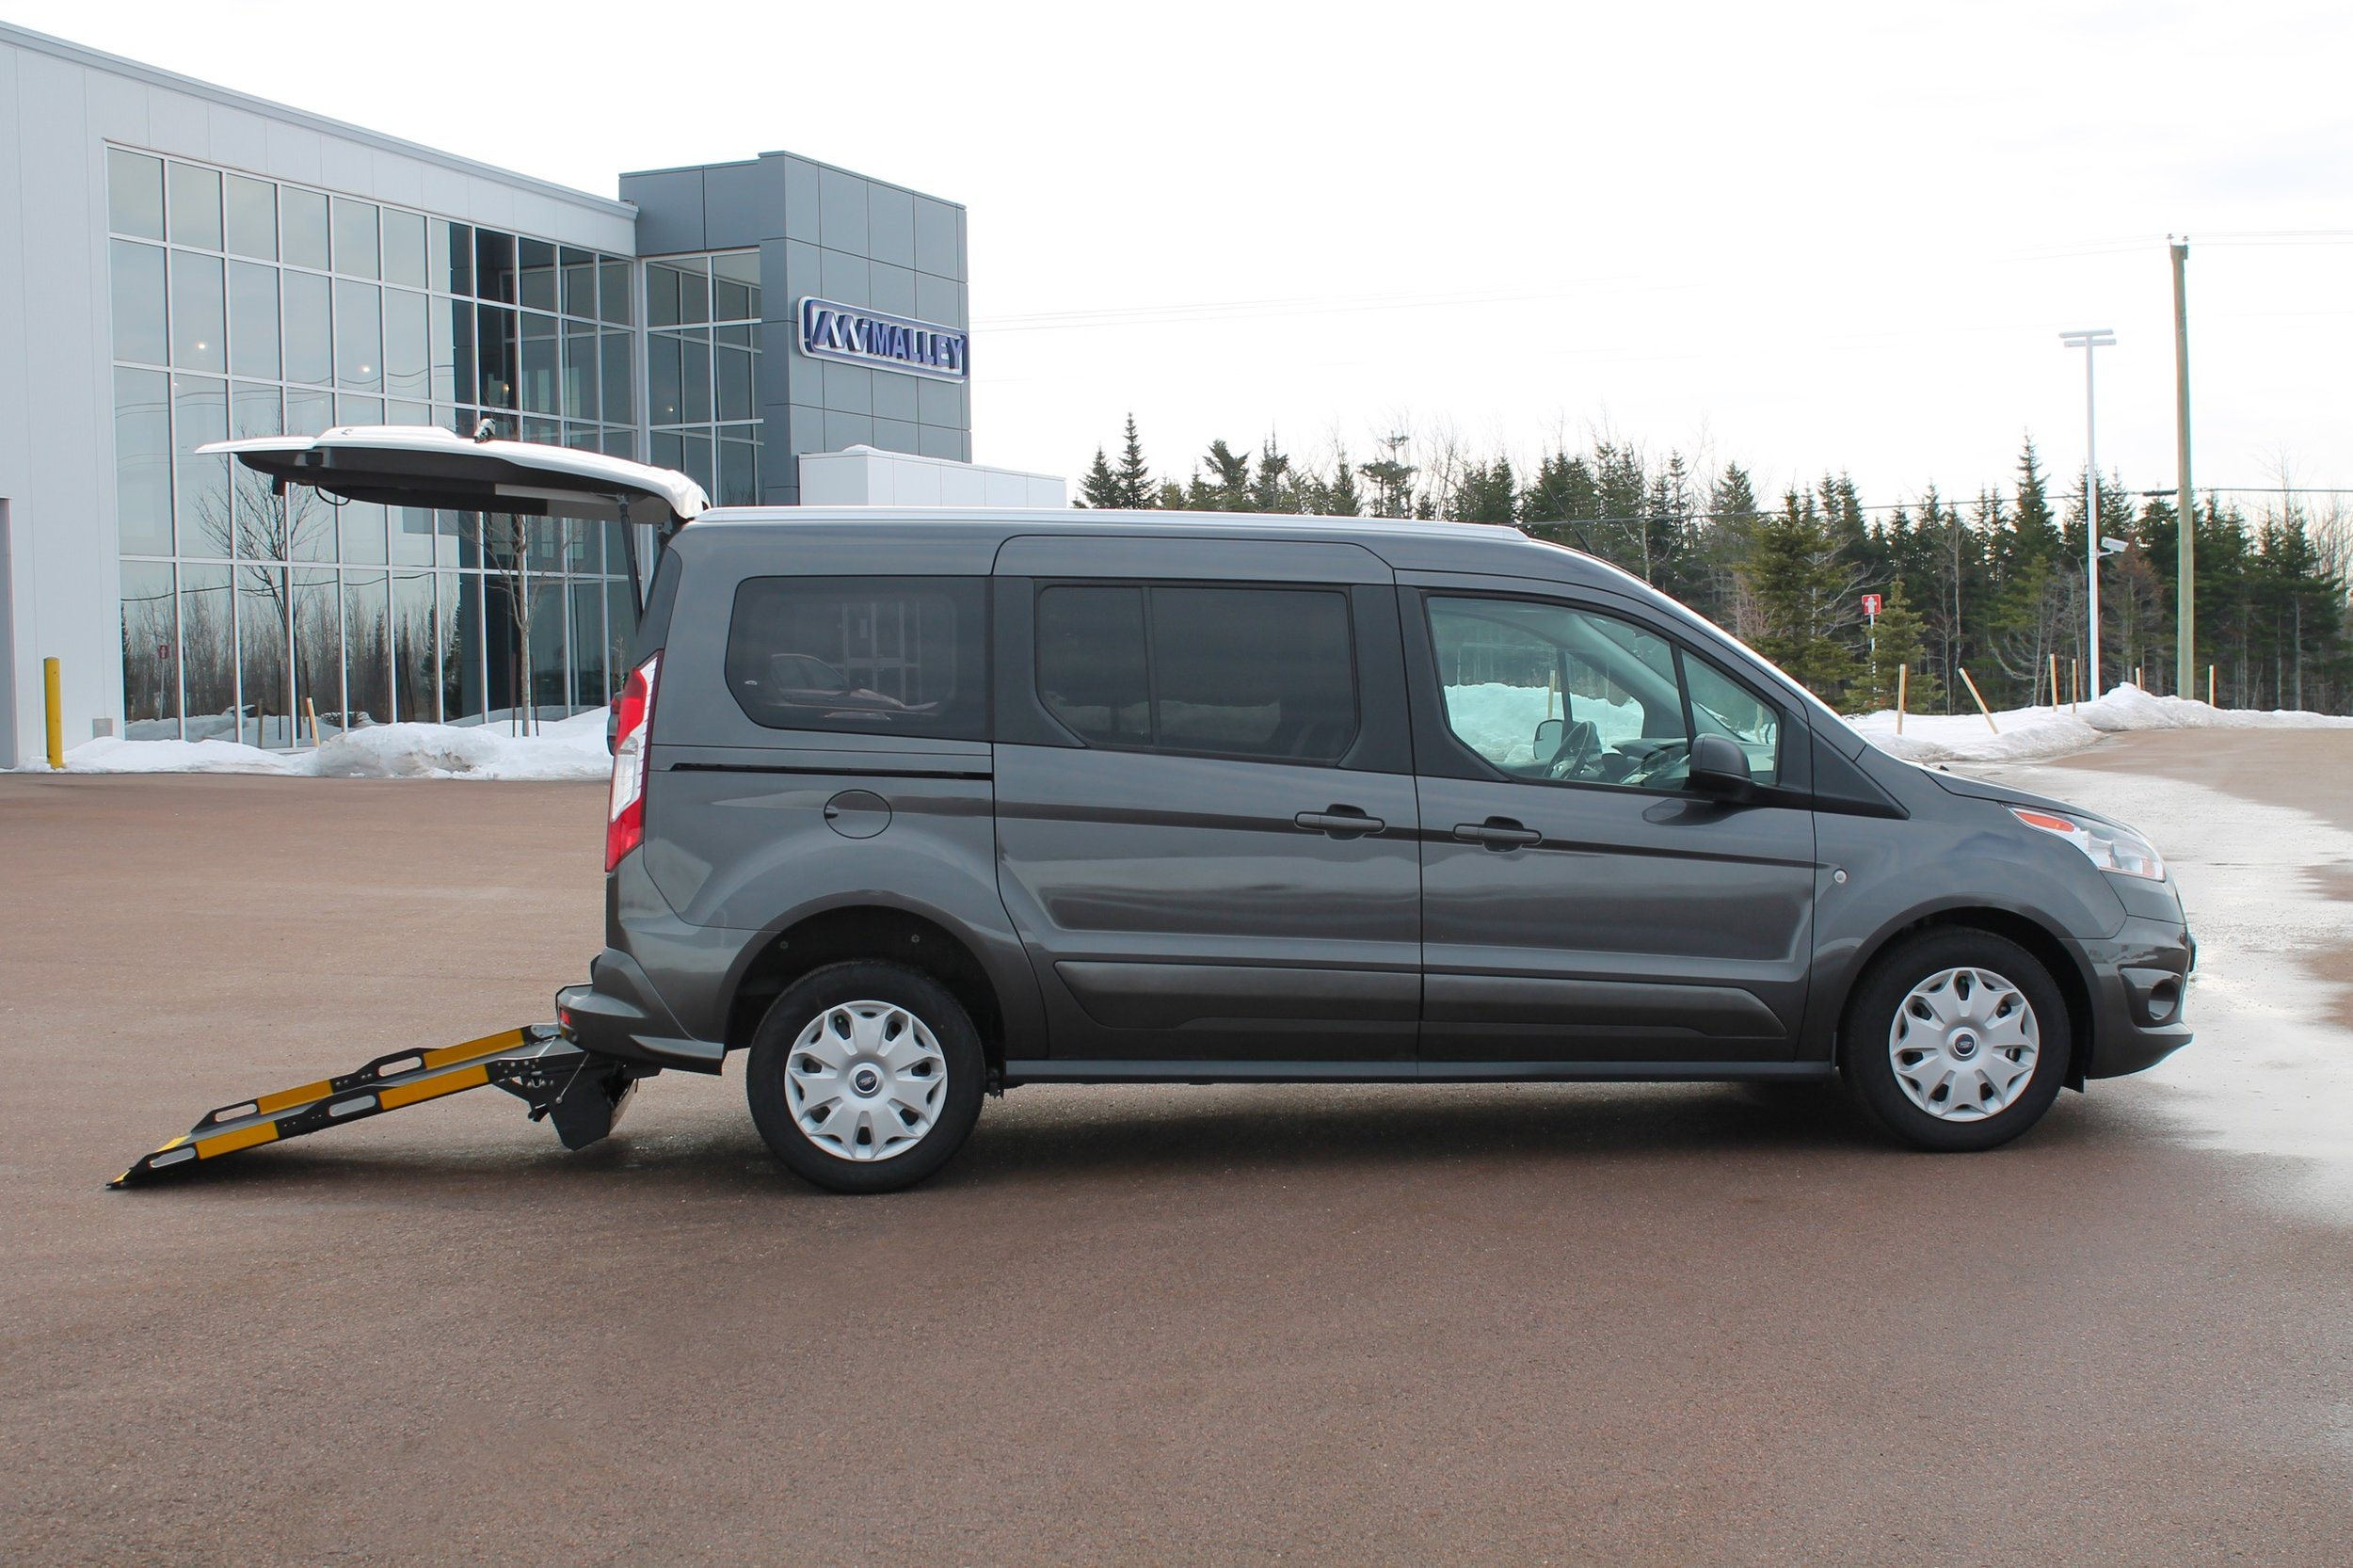 2018-ford-transit-connect-LF100257-charcoal_015.JPG